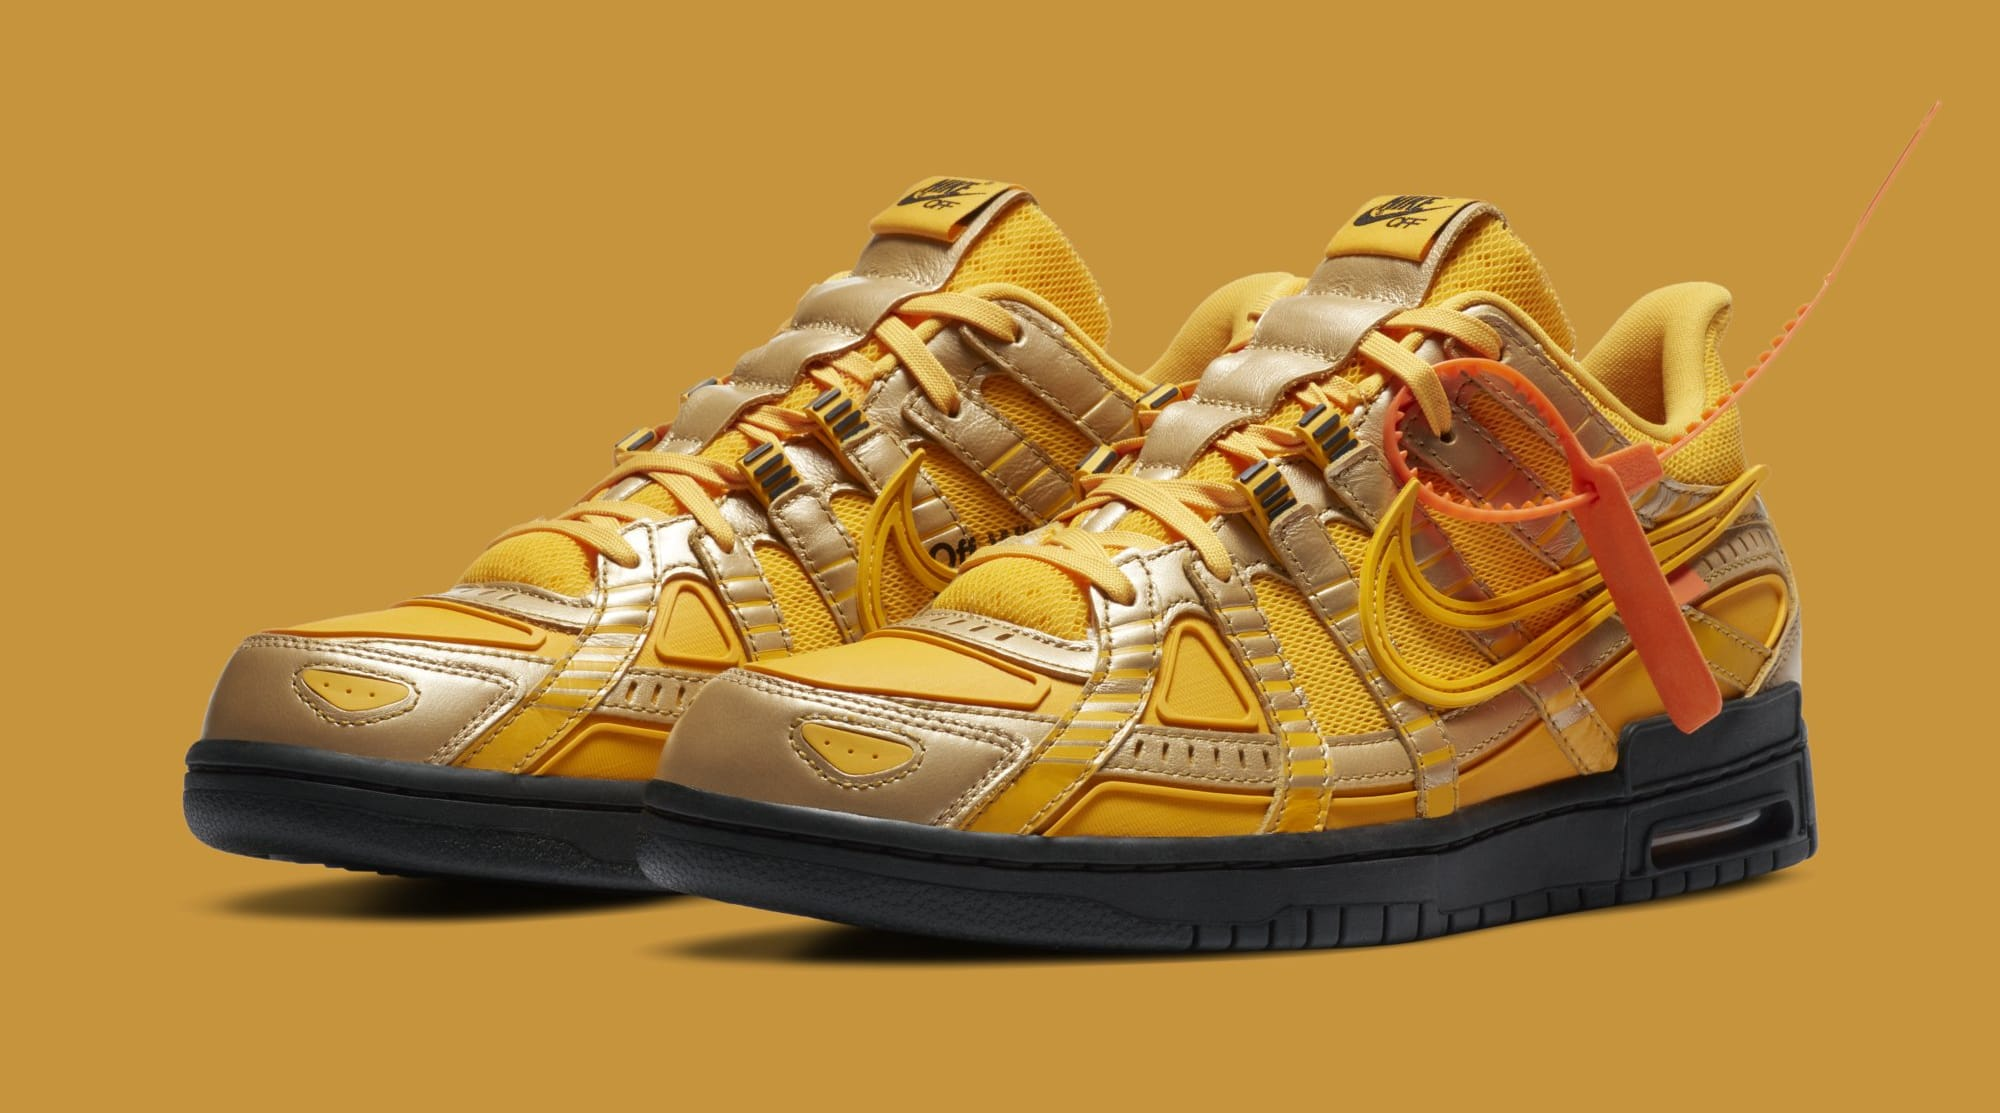 Off-White x Nike Air Rubber Dunk 'University Gold' CU6015-700 Pair